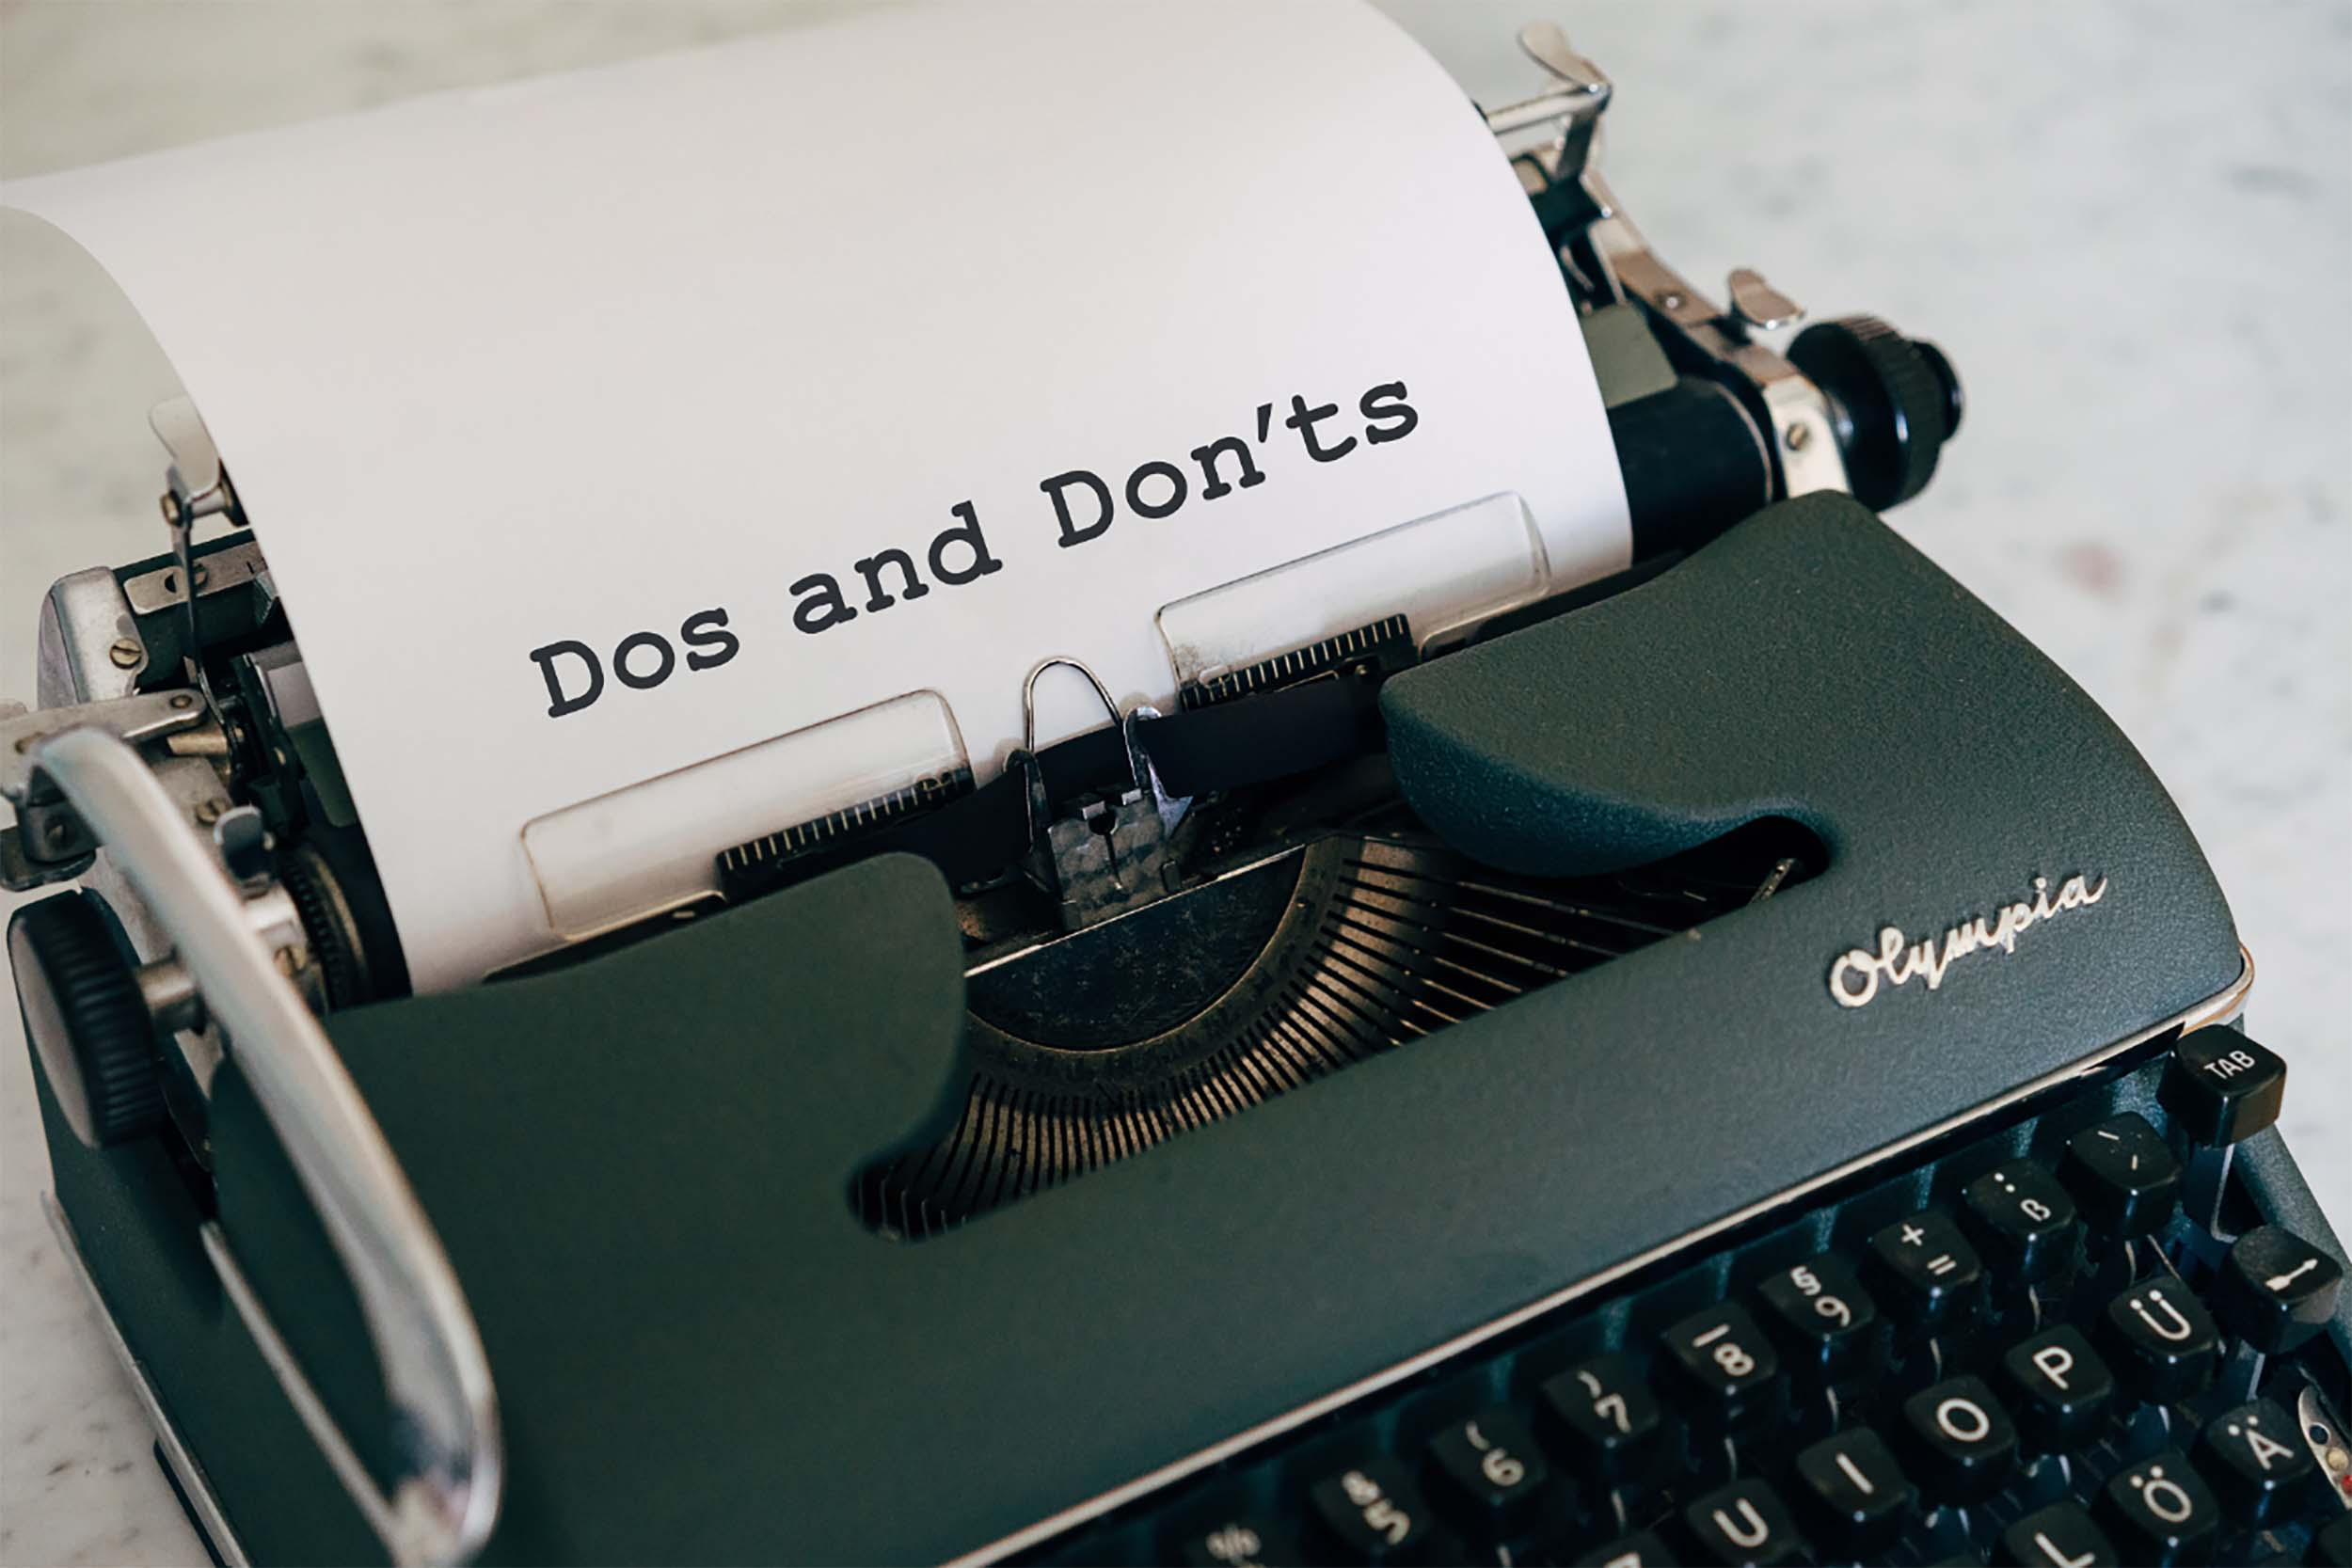 Typewriter with Do's and Don'ts title typed out on a piece of paper